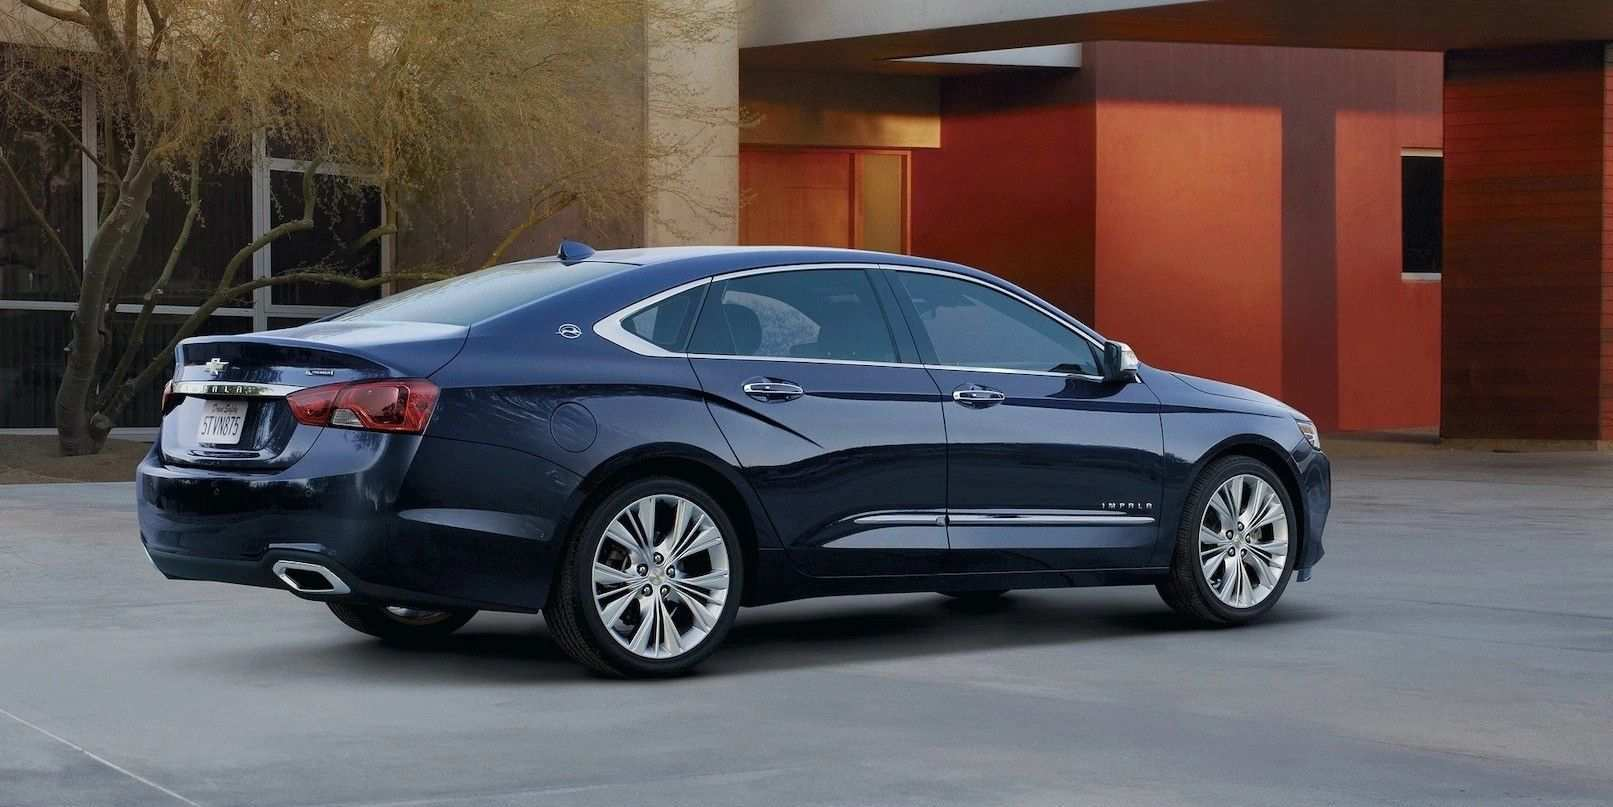 88 The Best 2019 Chevy Impala SS Specs And Review